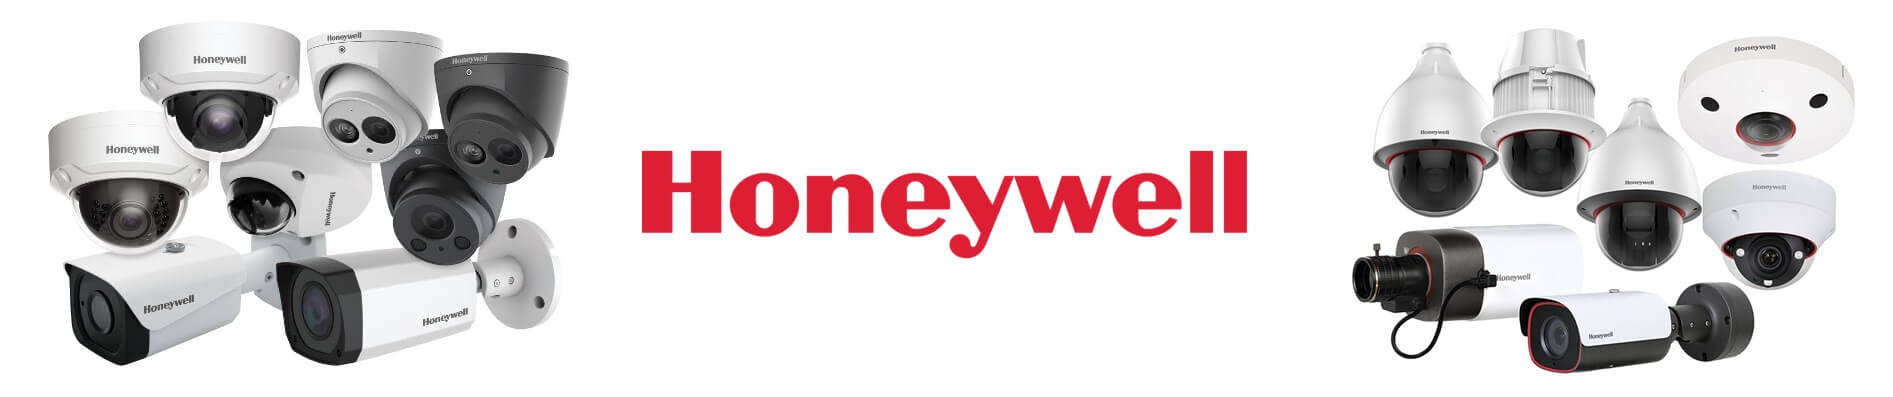 honeywell cctv slider